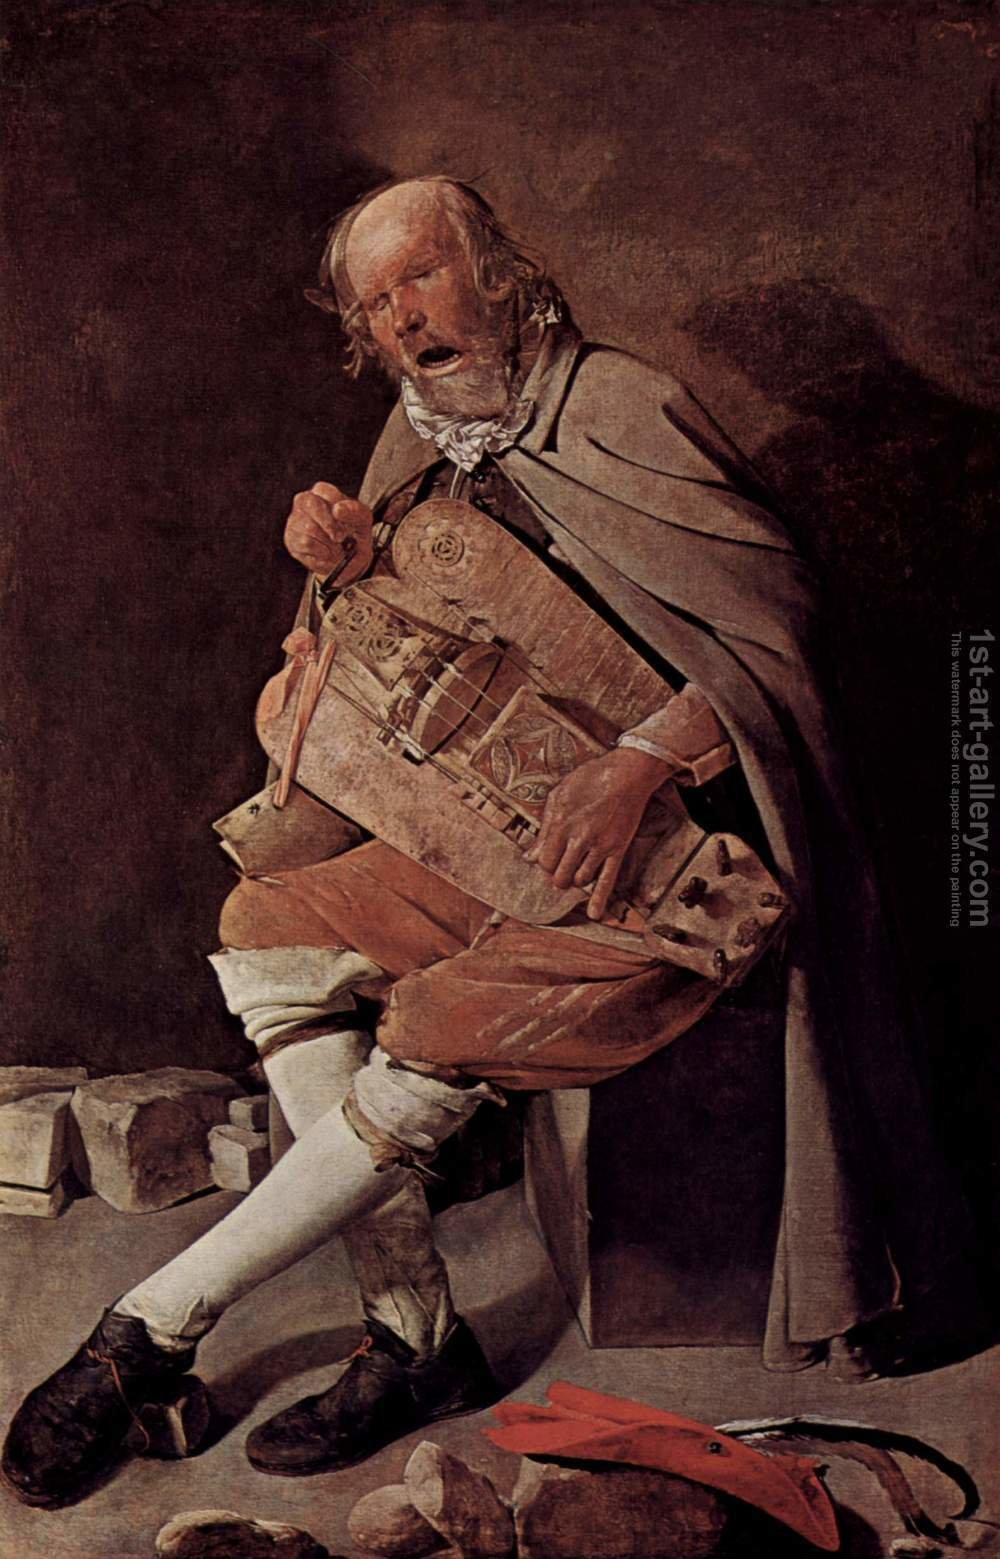 Huge version of The Hurdy-gurdy Player 1631-36